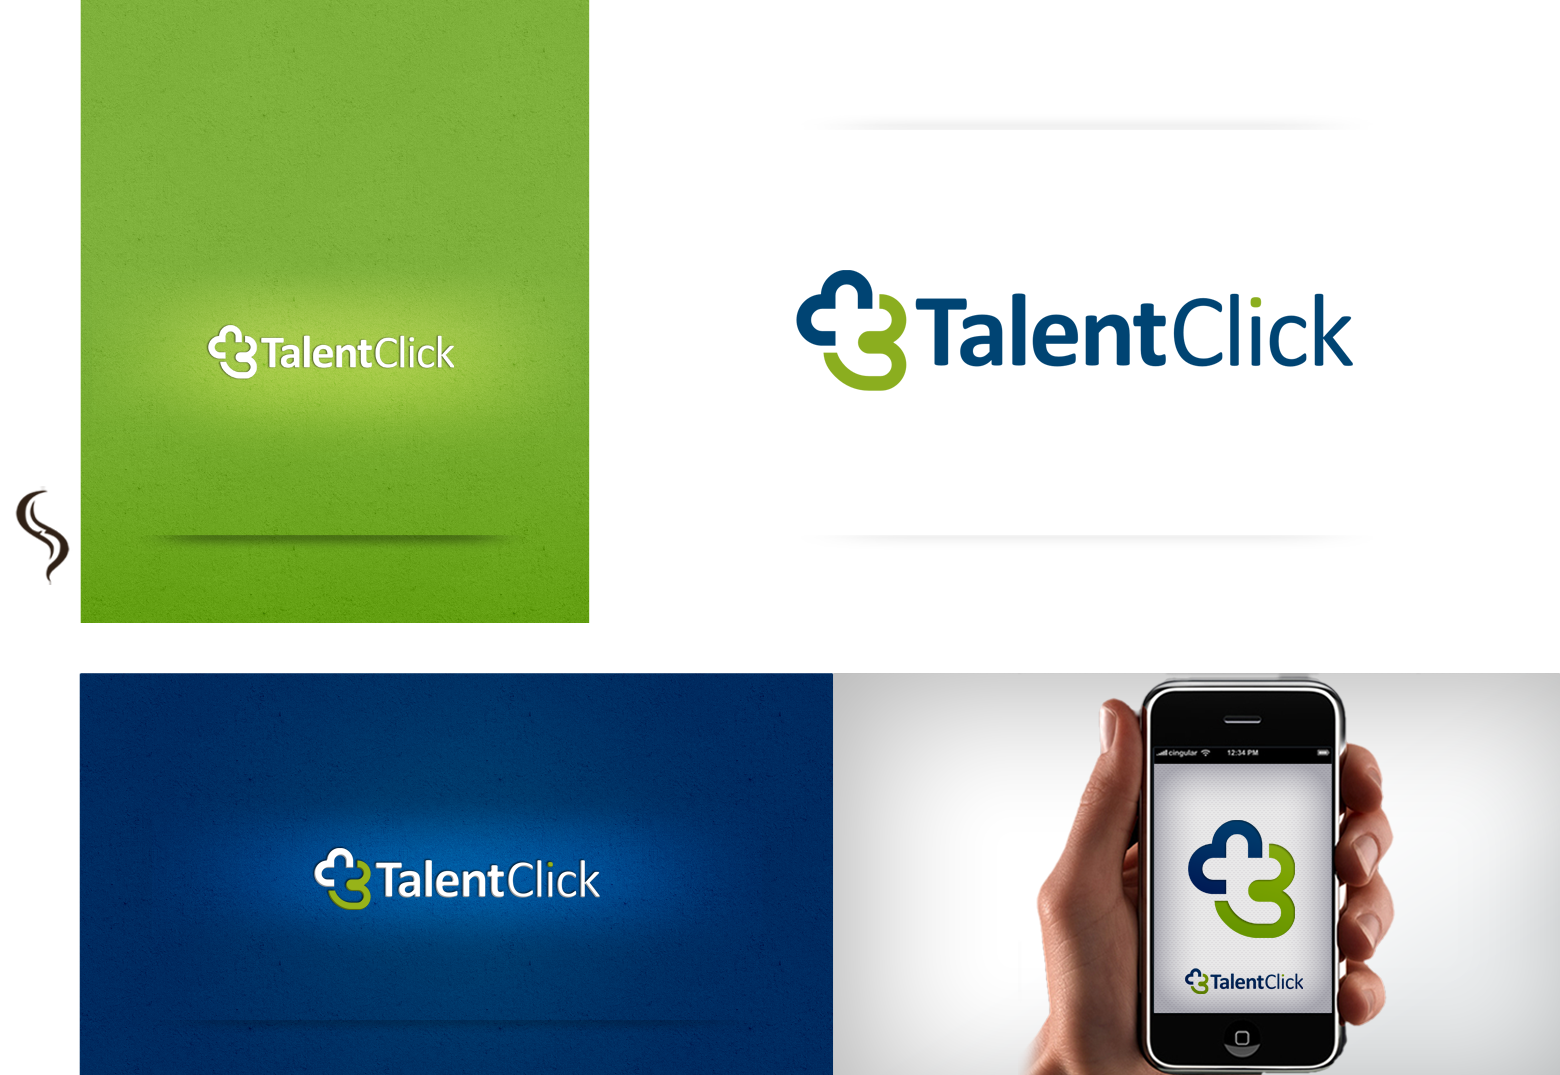 New logo wanted for TalentClick